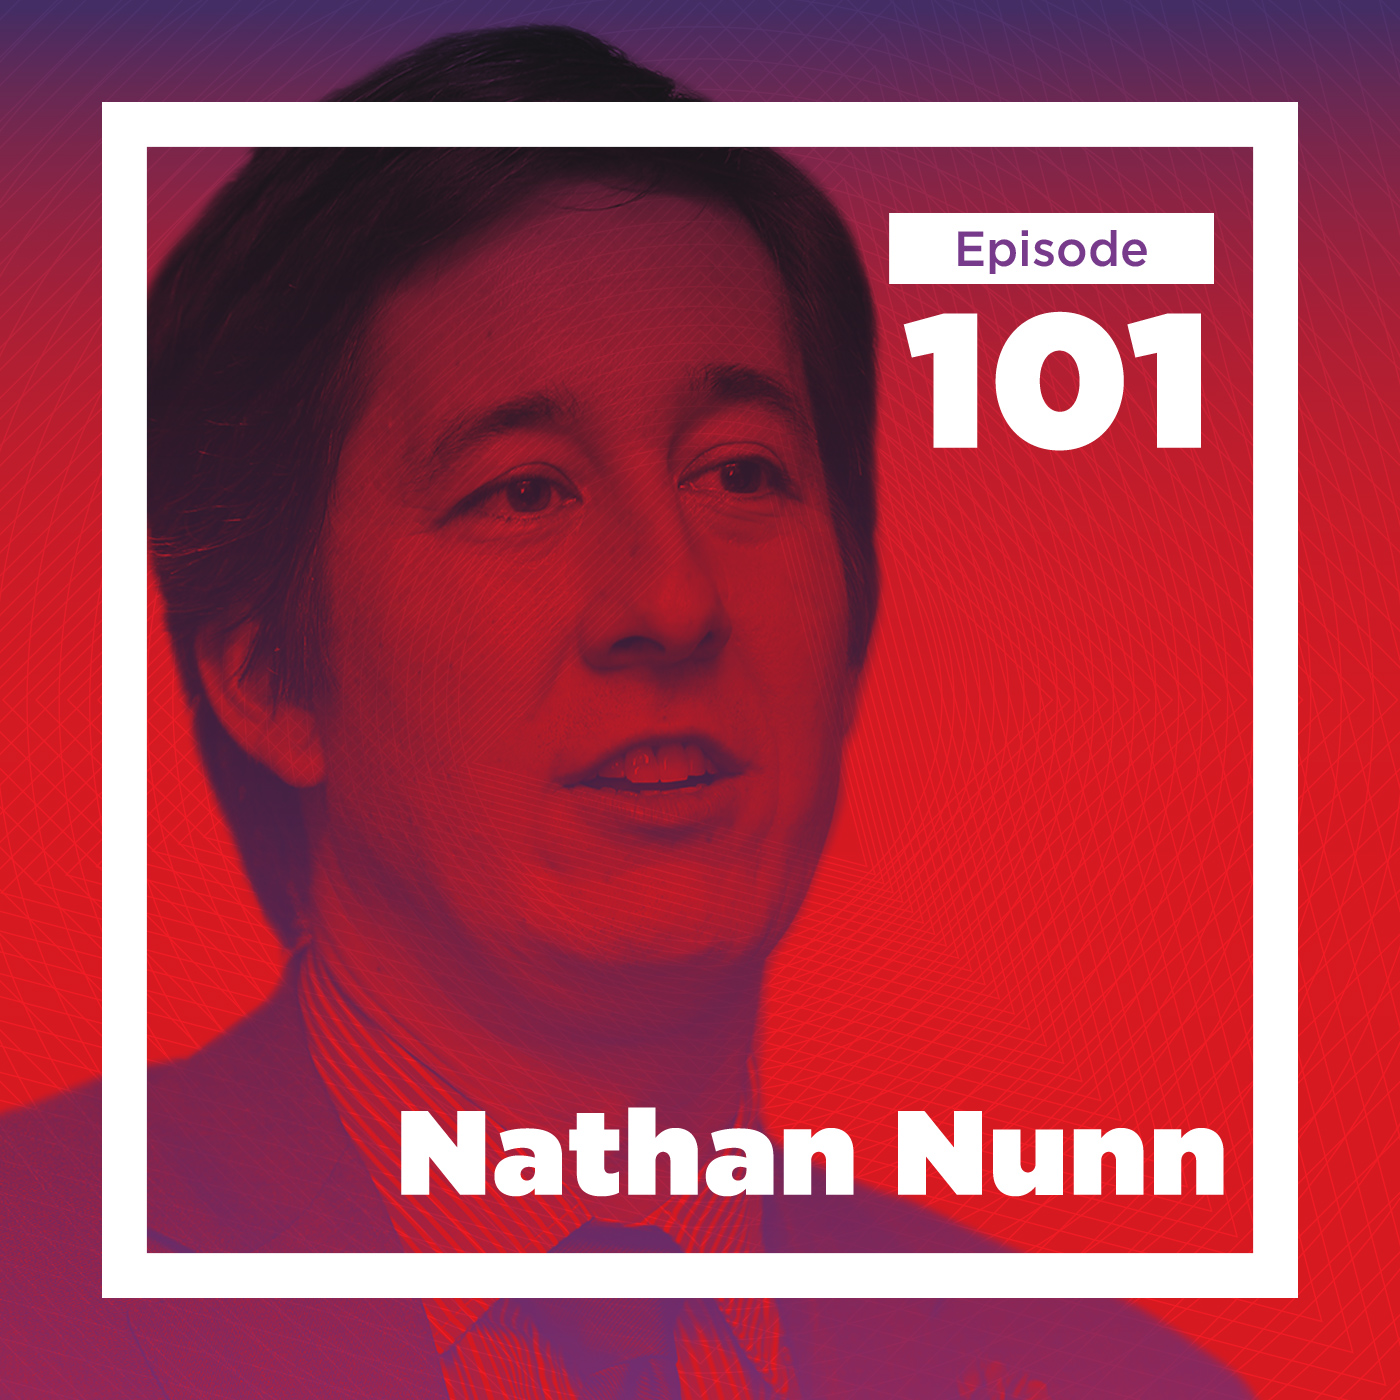 Nathan Nunn on the Paths to Development